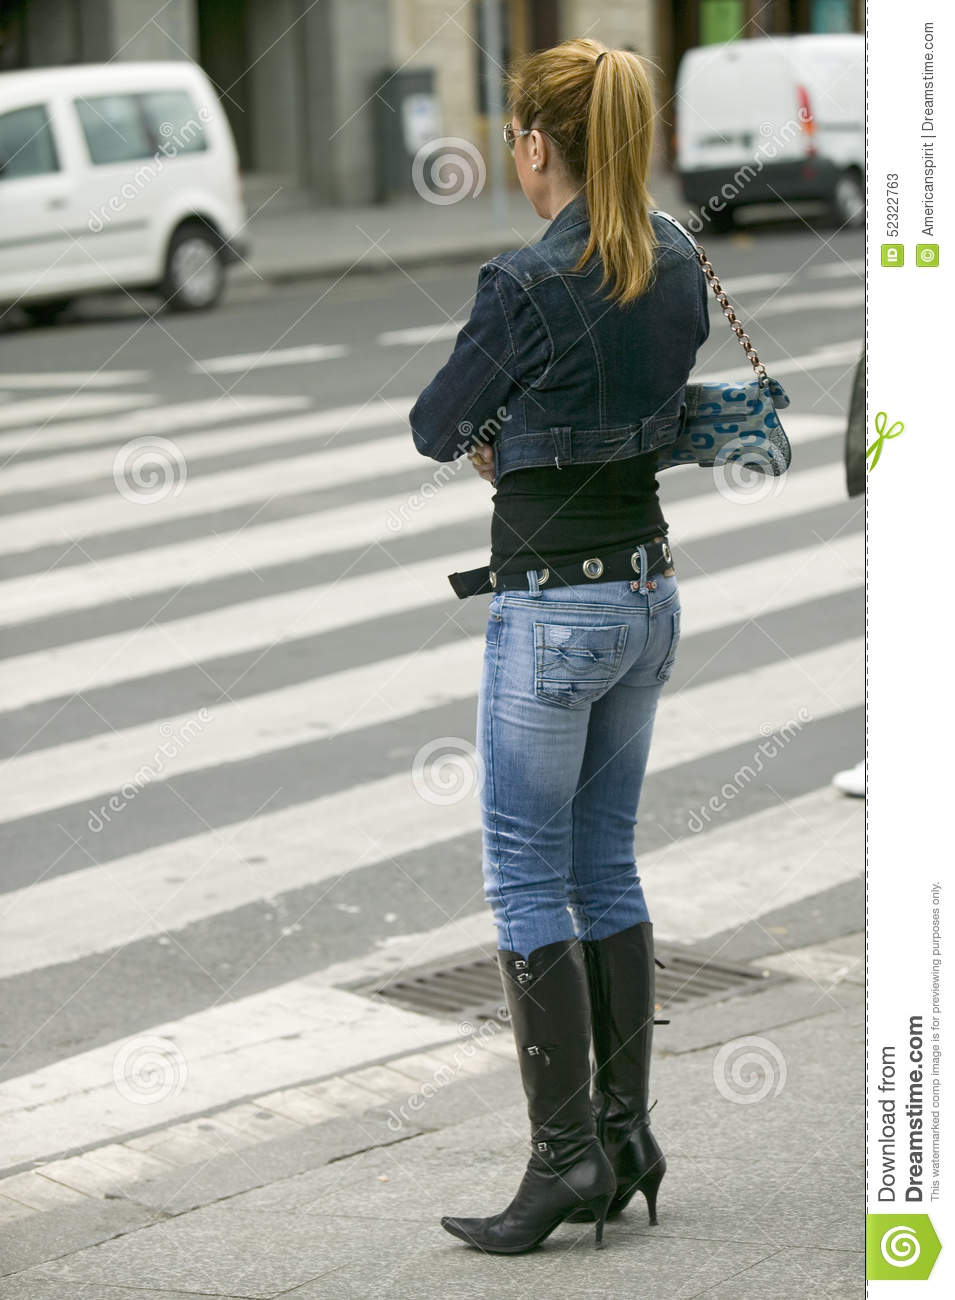 Fashionably Dressed Woman In Black Boots With High Heels And Tight ...